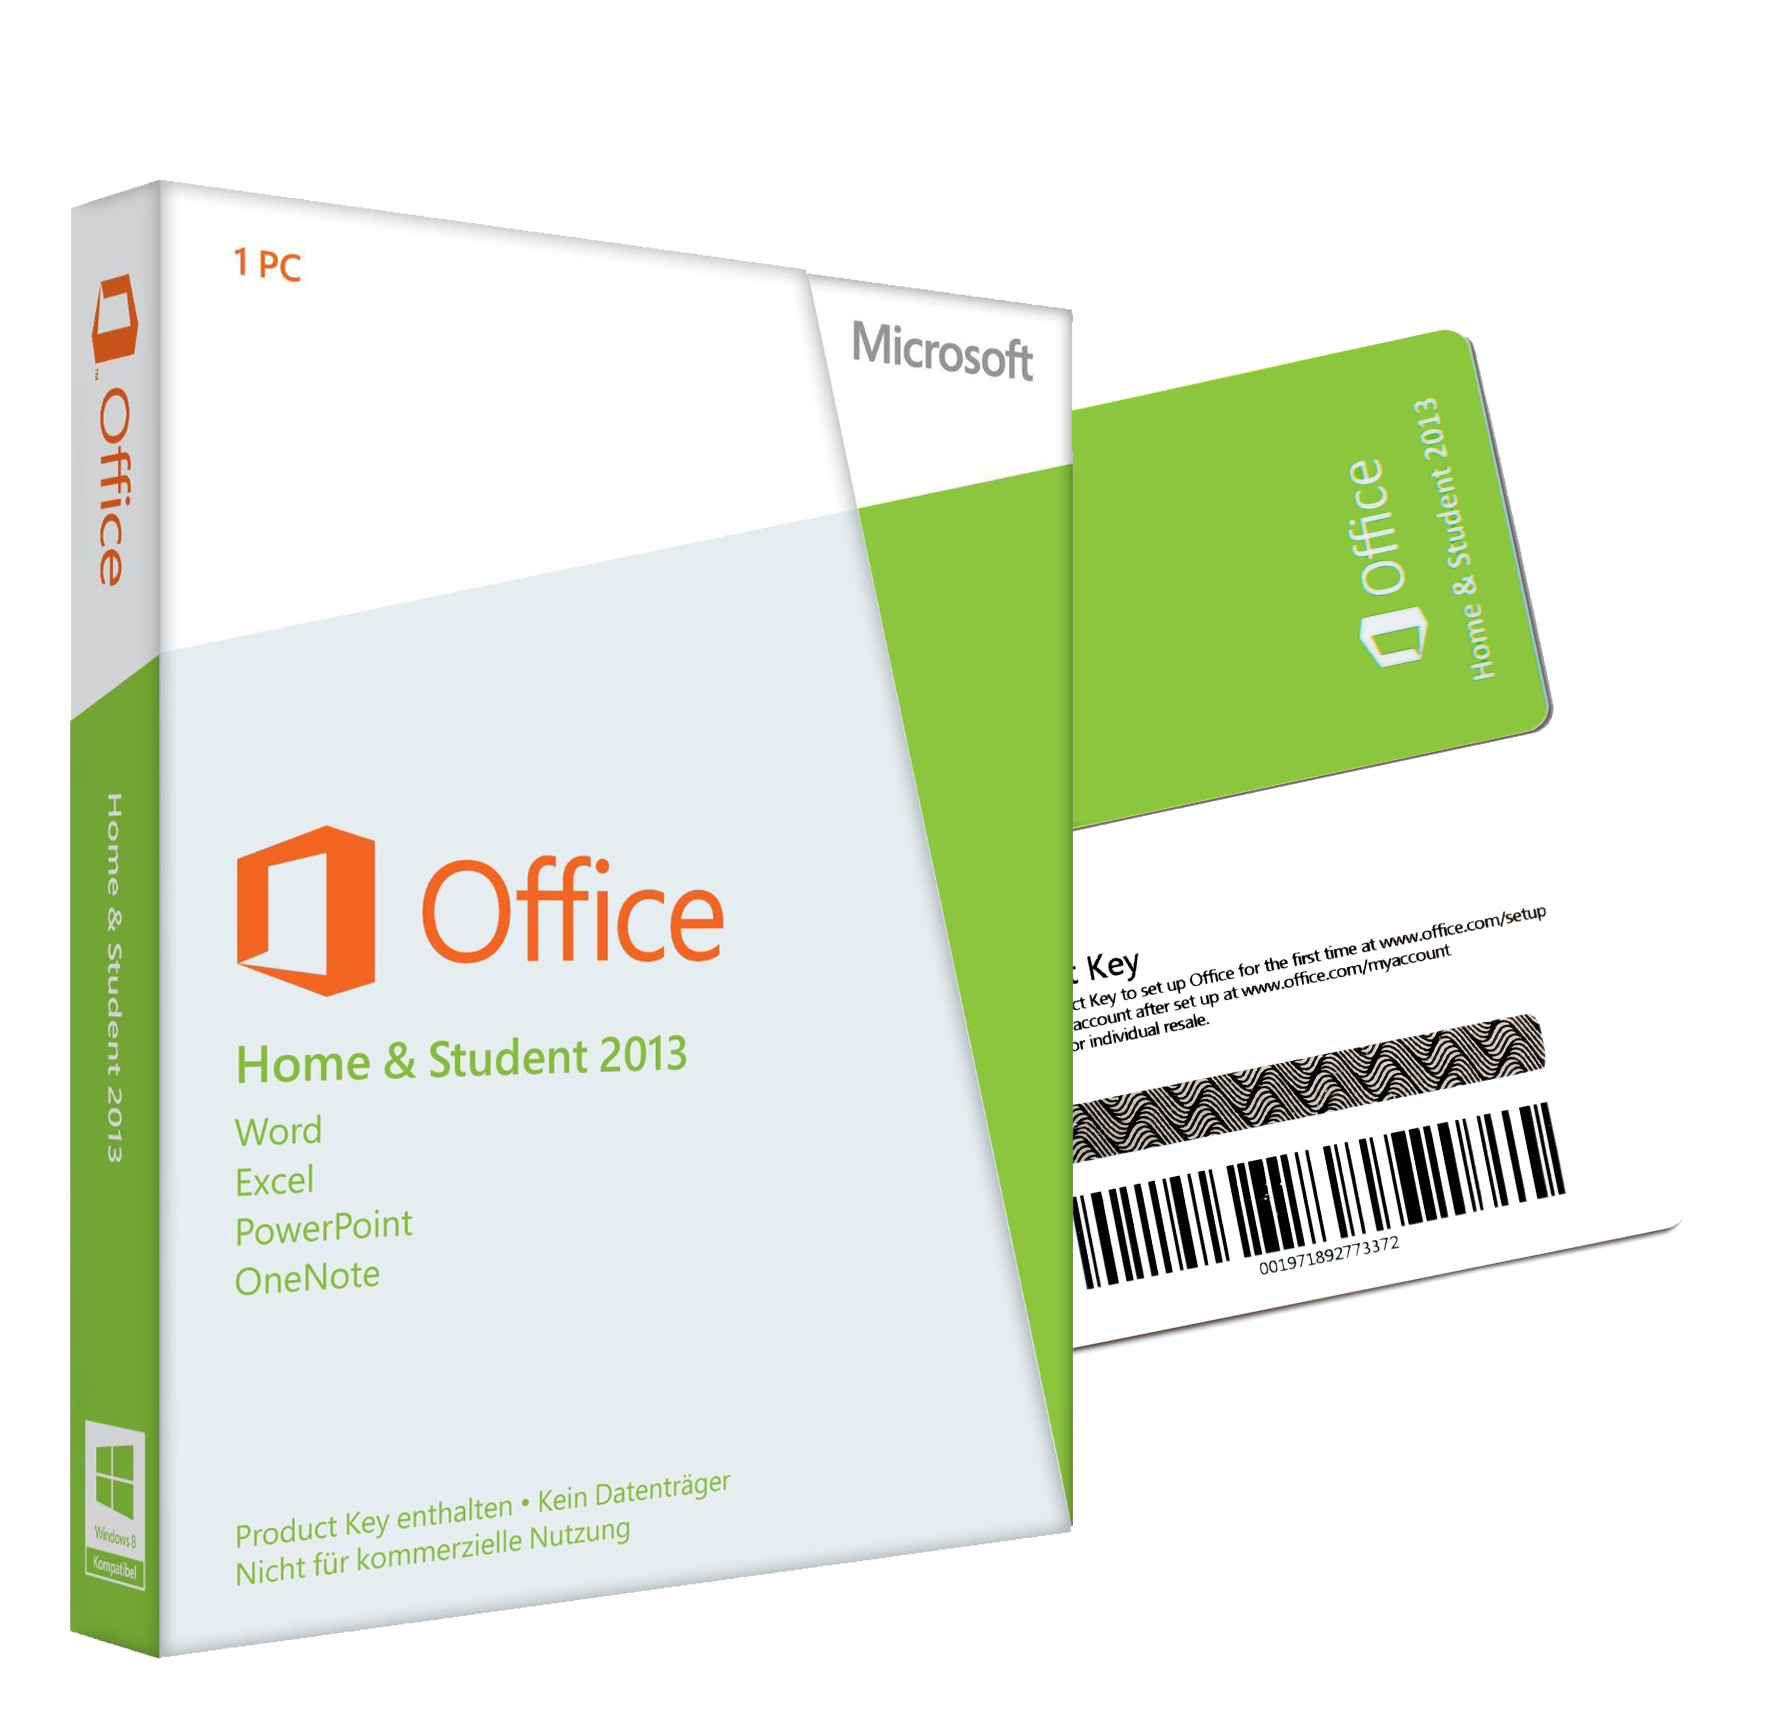 microsoft office 2013 home and student pkc 32 64 bit 1pc. Black Bedroom Furniture Sets. Home Design Ideas